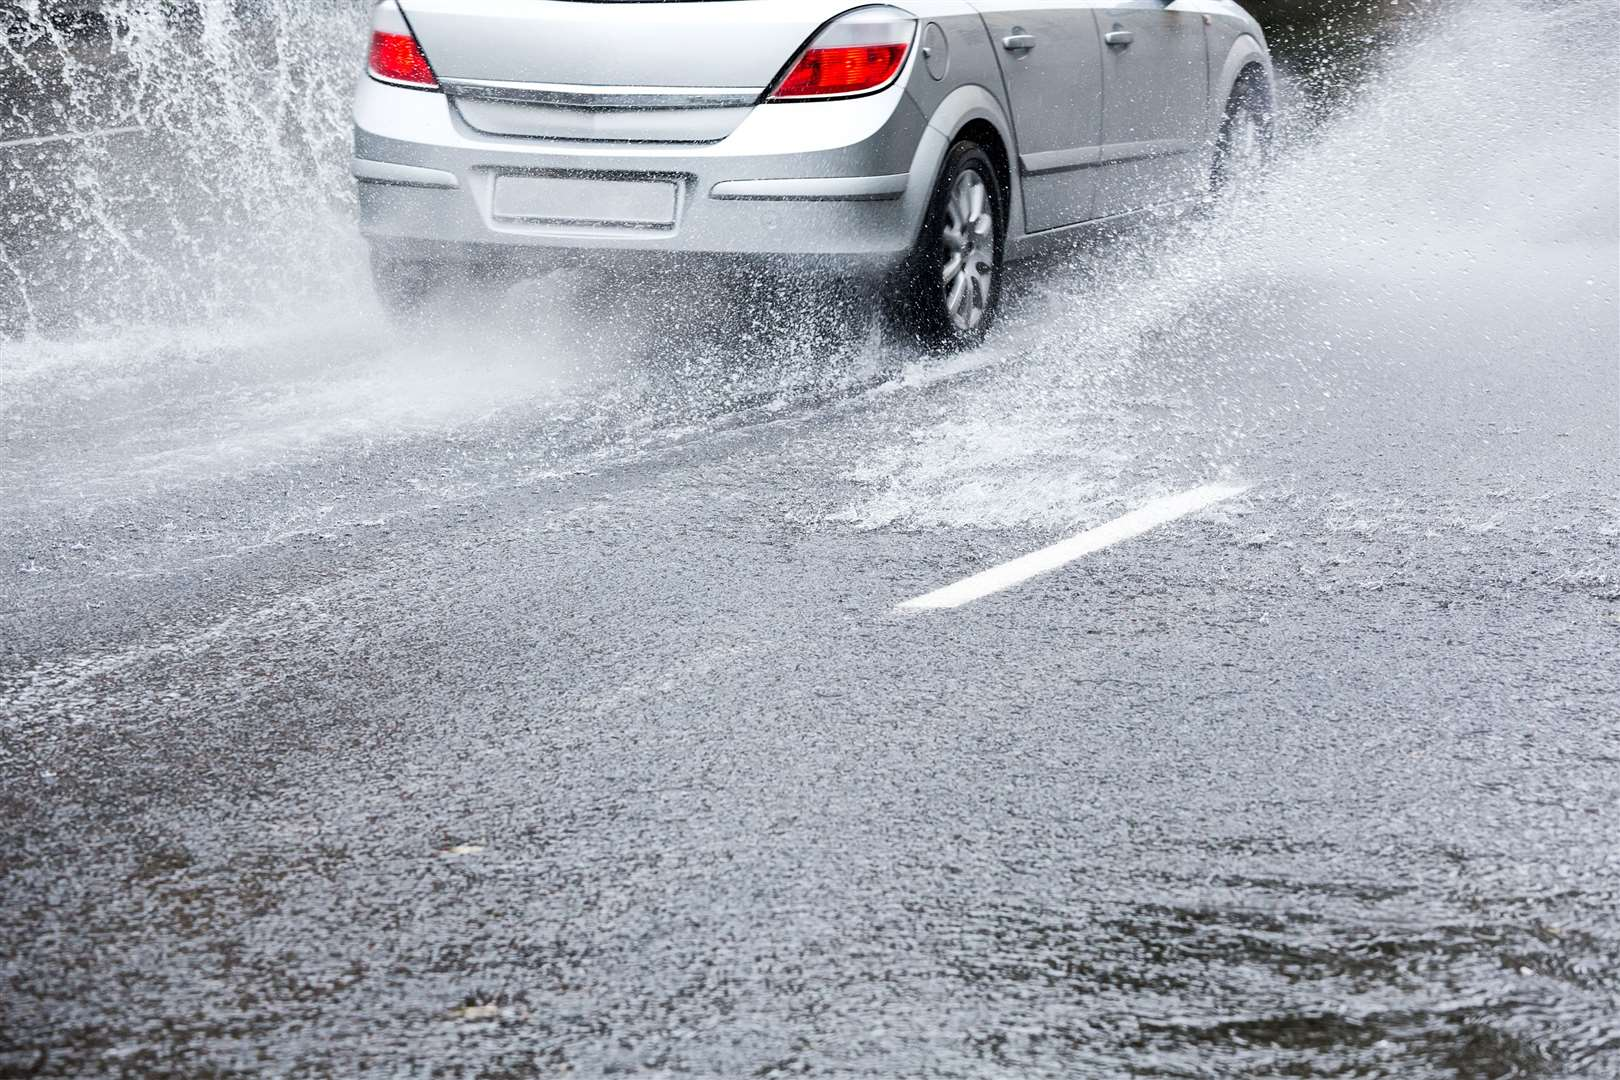 Flooding on the A143 is a danger to road users